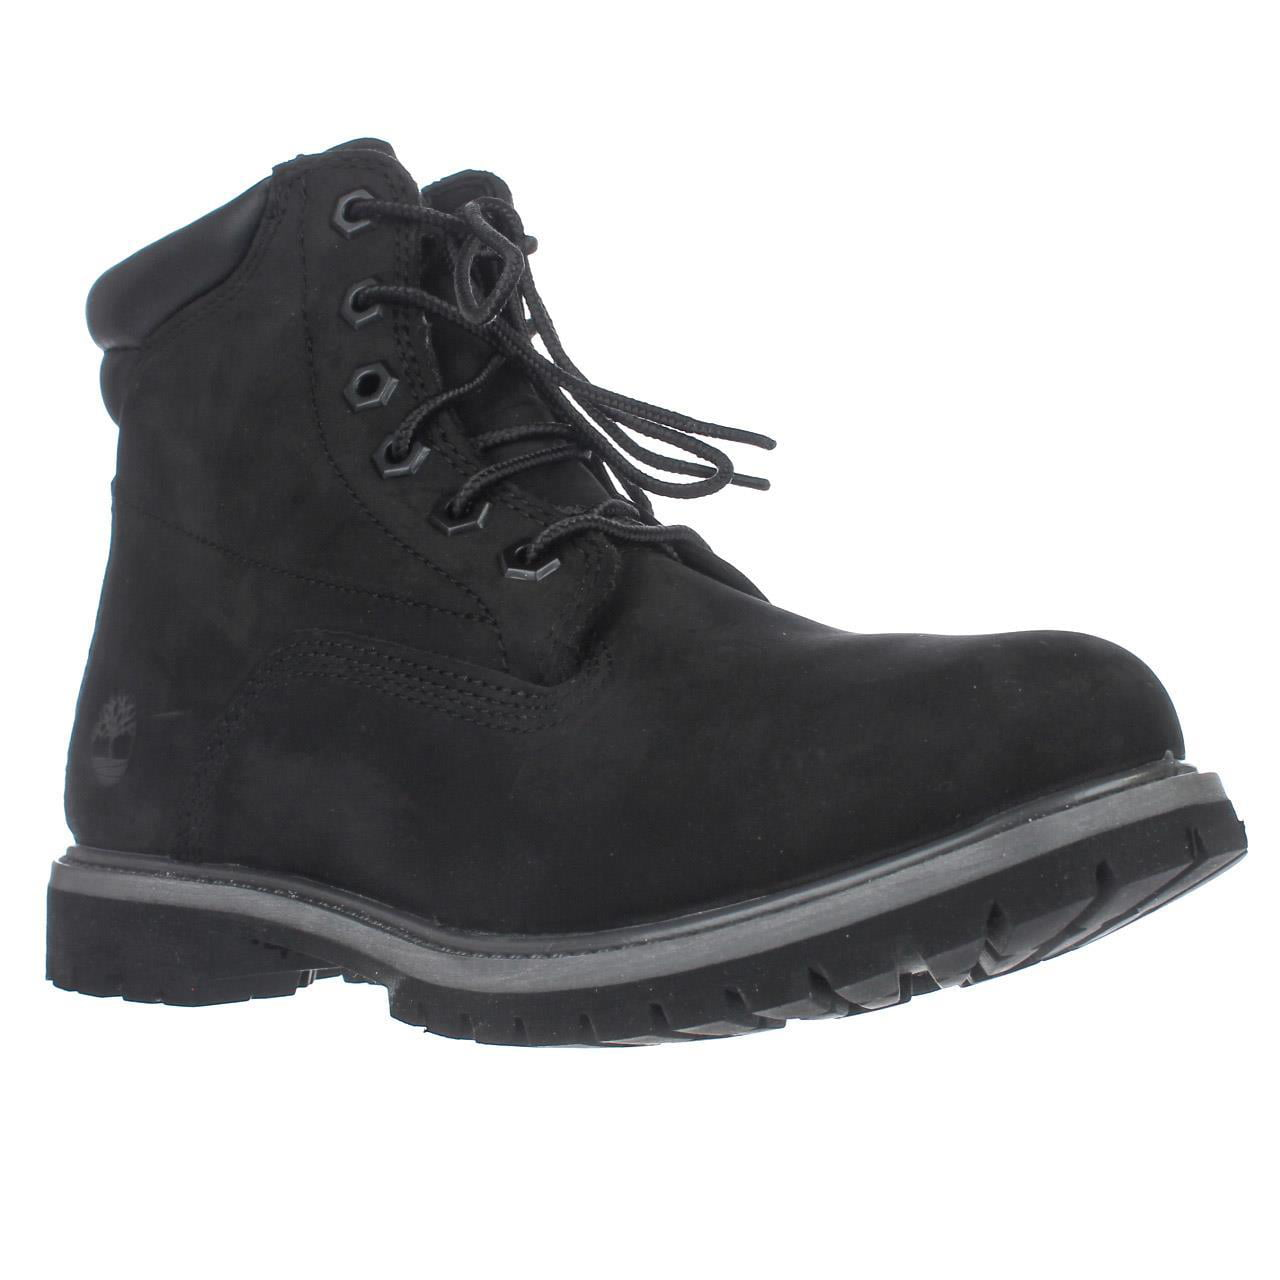 Womens Timberland Waterville Waterproof Ankle Boots, Black by Timberland